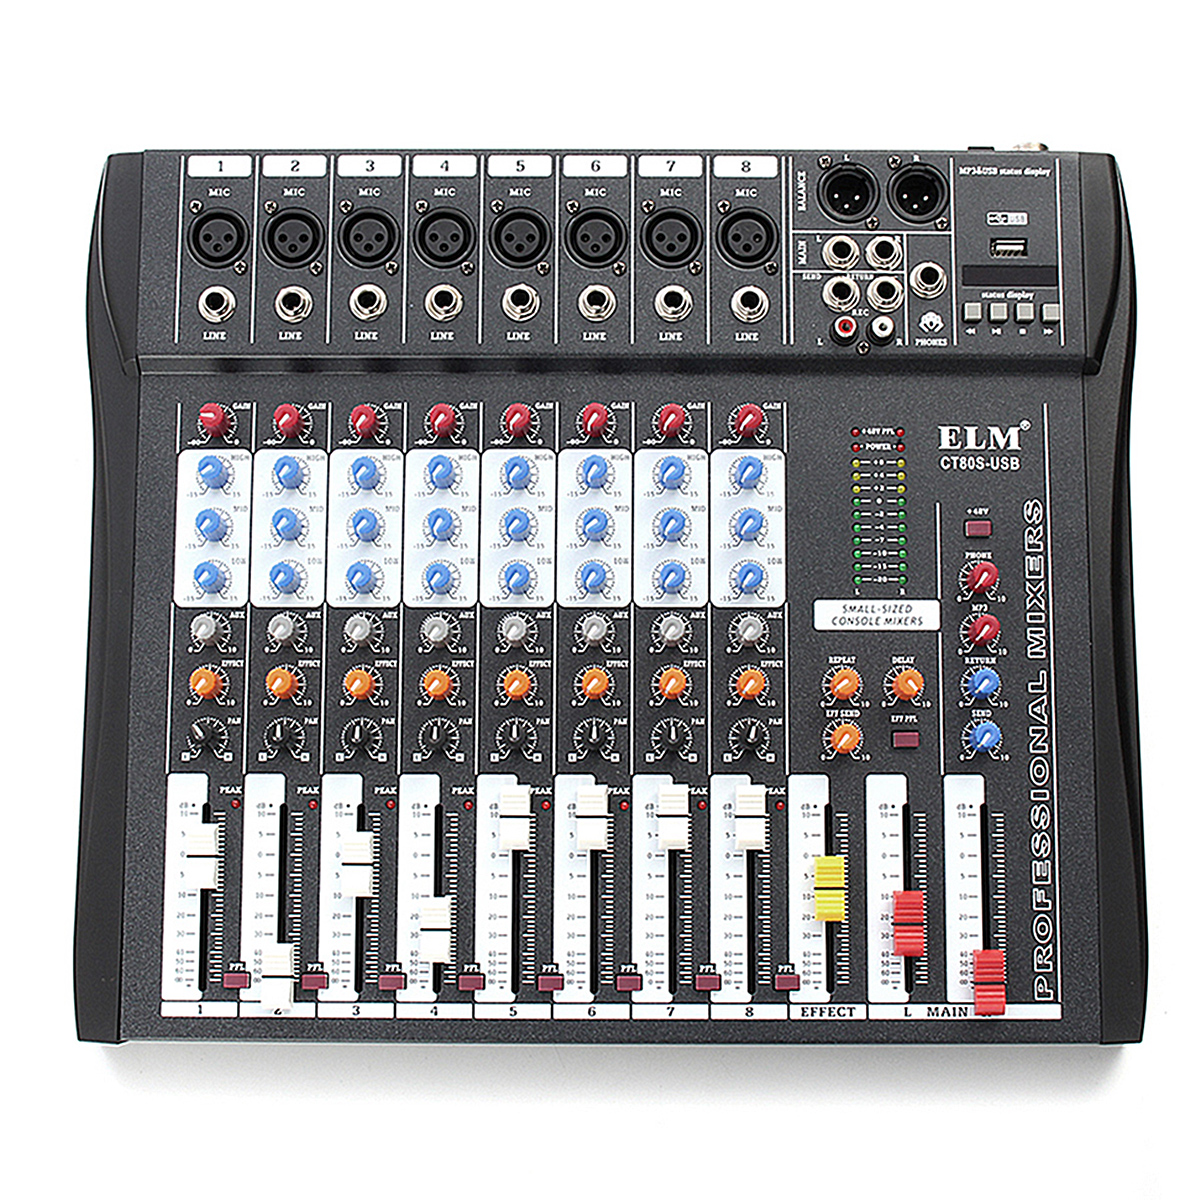 Professional 8 Channel DJ Sound Mixing Console with Bluetooth Record Phantom Power With 48V Phantom Power USB Jack leory mini karaoke audio mixer 4 channel microphone digital sound mixing amplifier console built in 48v phantom power with usb